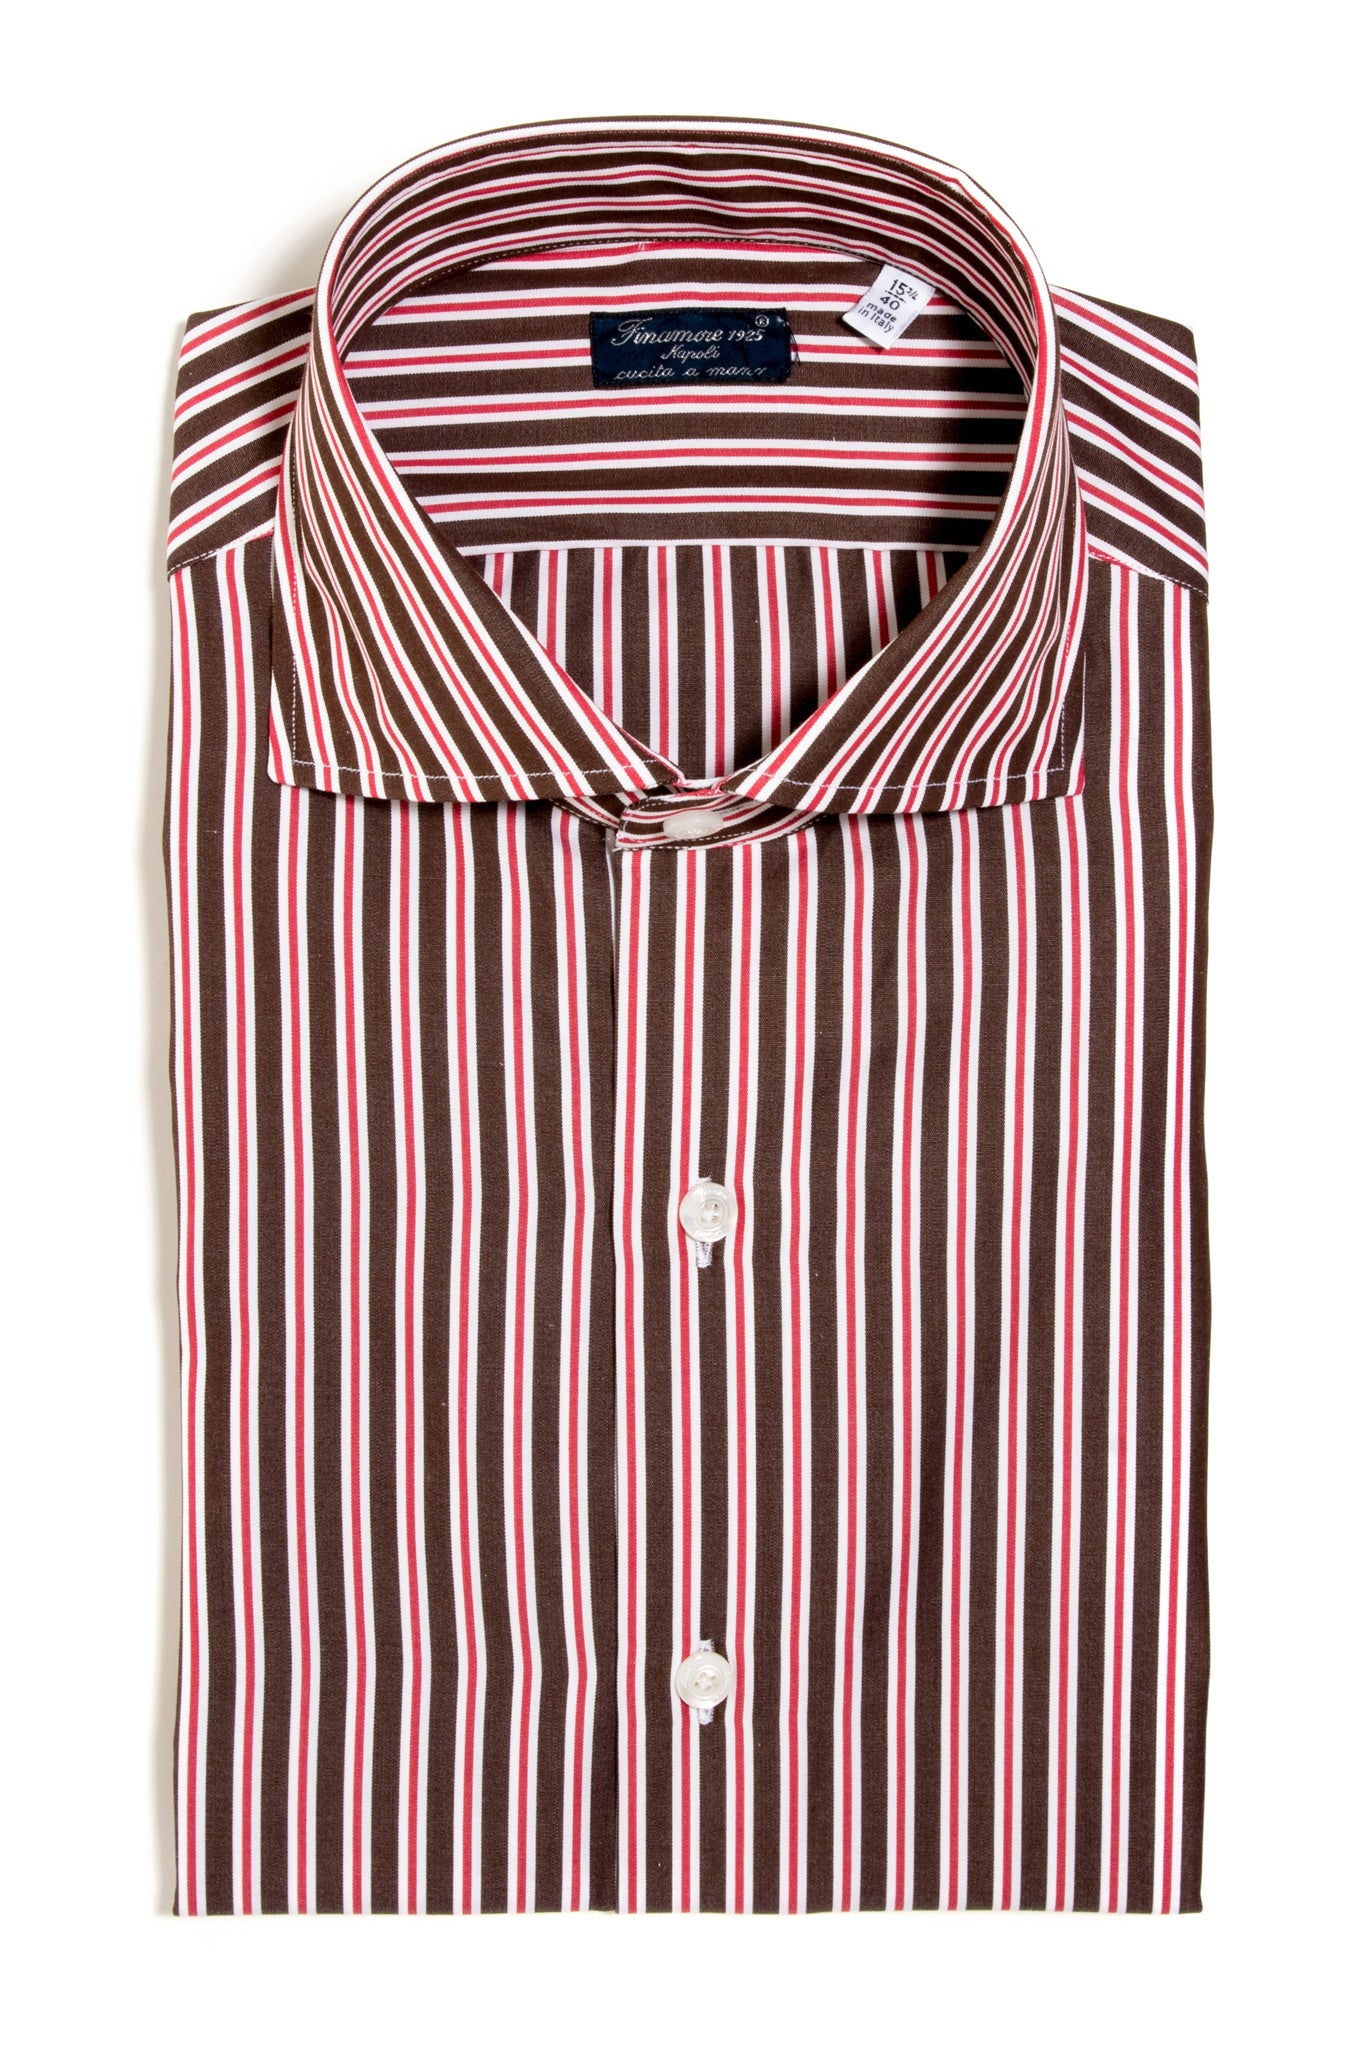 Finamore Landolfi Poplin Dress Shirt (147442335768)